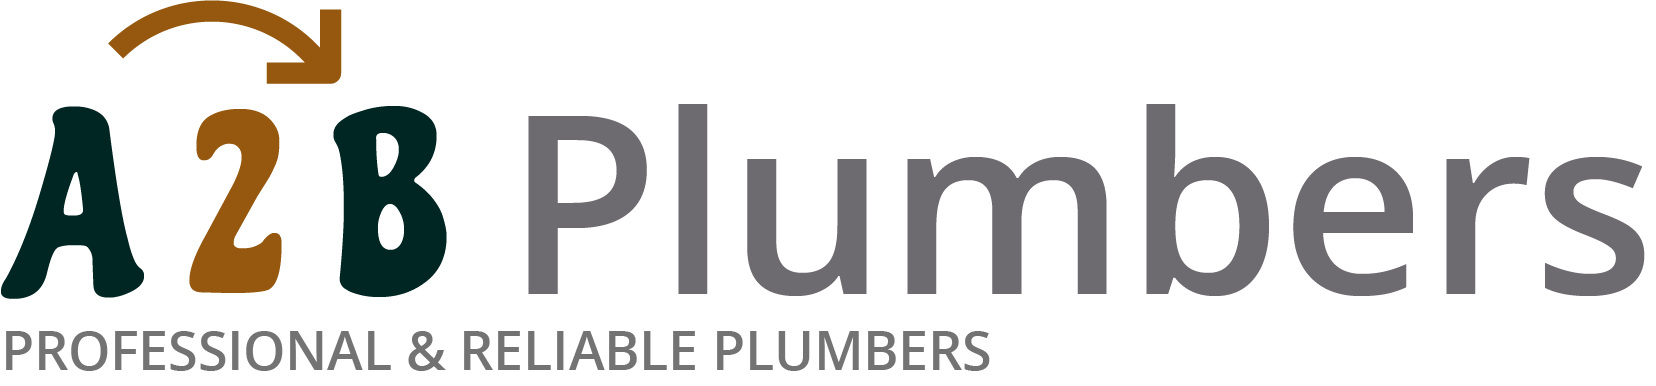 If you need a boiler installed, a radiator repaired or a leaking tap fixed, call us now - we provide services for properties in Plumstead and the local area.